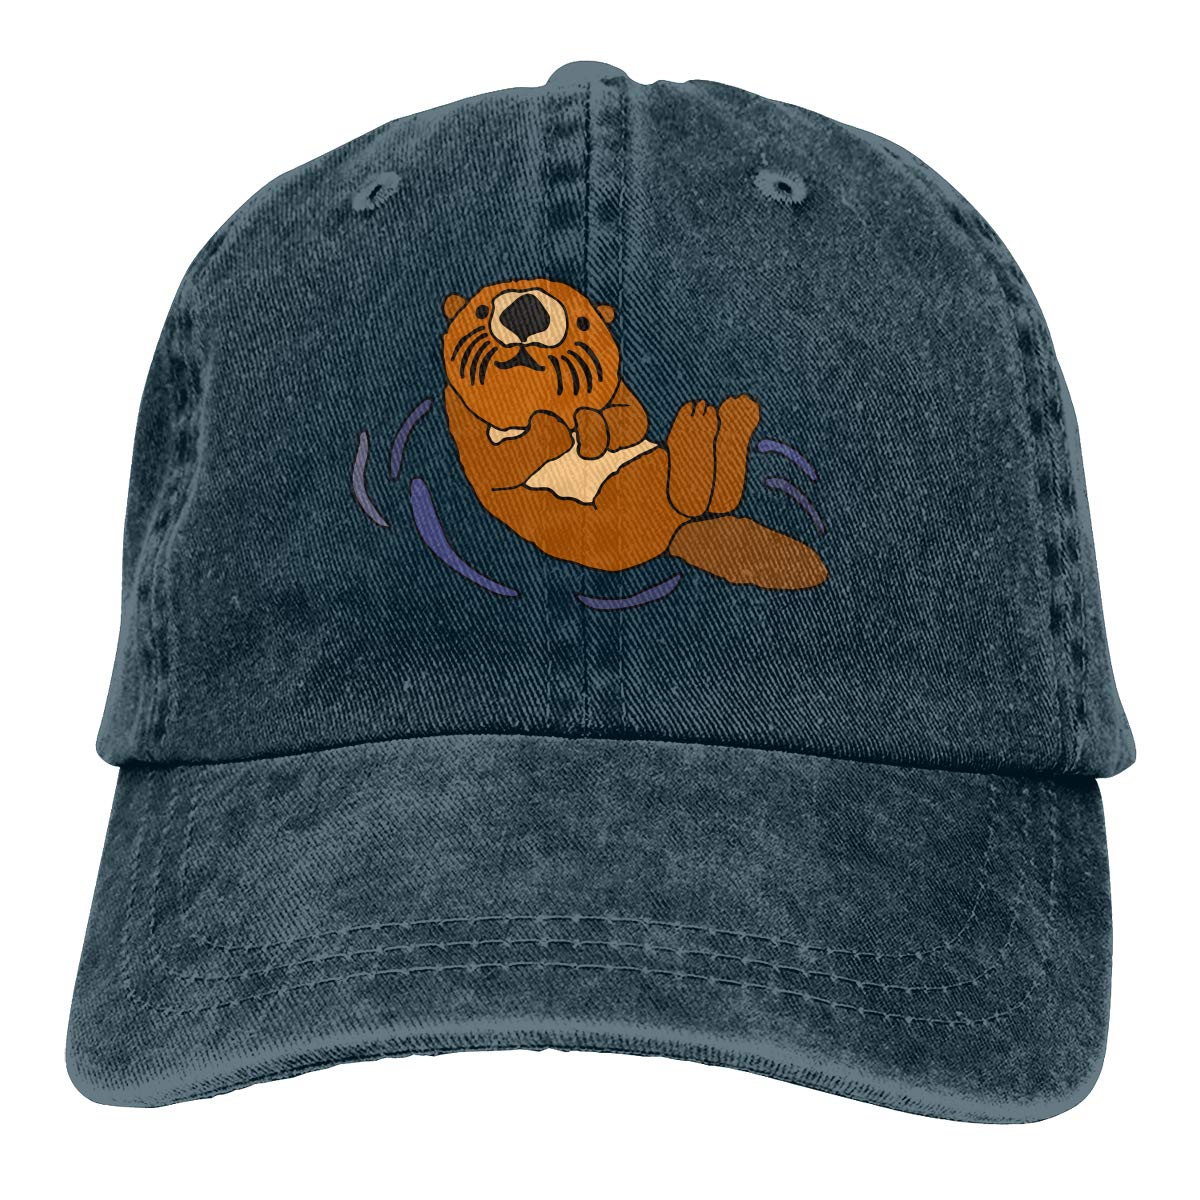 PMGM-C Floating Sea Otter Unisex Trendy Cowboy Outdoor Sports Hat Adjustable Baseball Cap